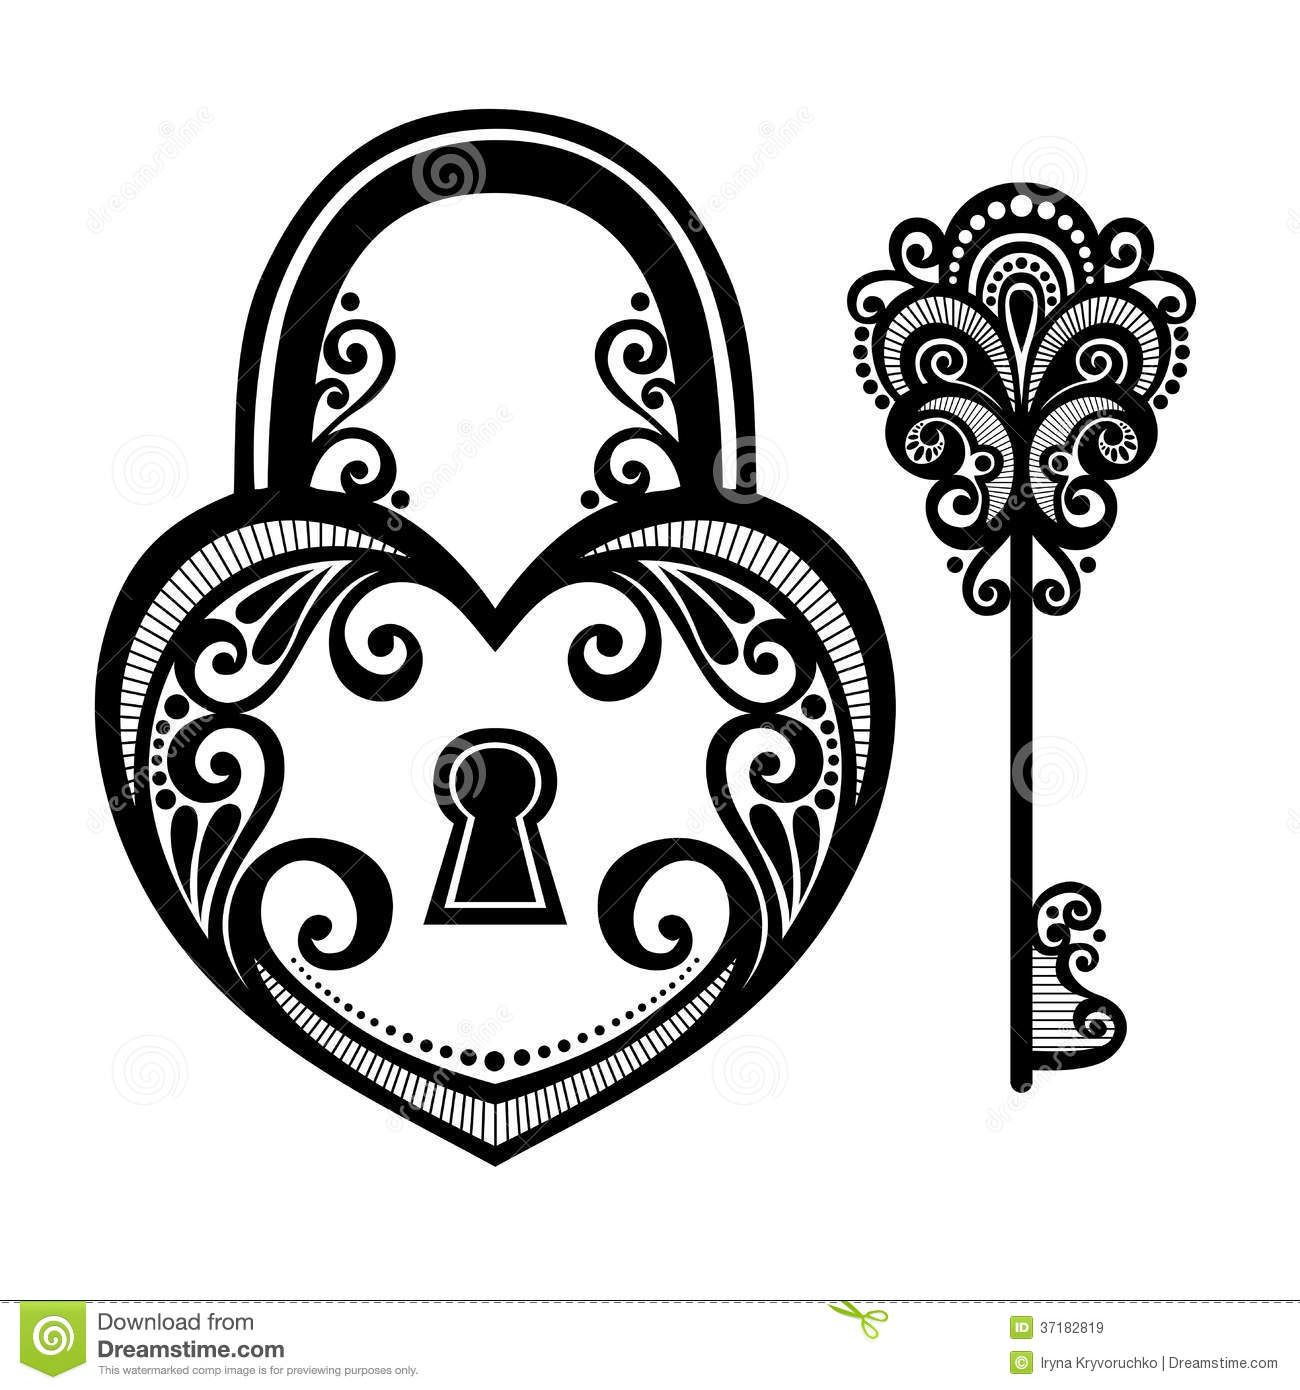 Vintage Lock With A Key - Download From Over 35 Million High Quality ... for Lock And Key Clipart Black And White  545xkb